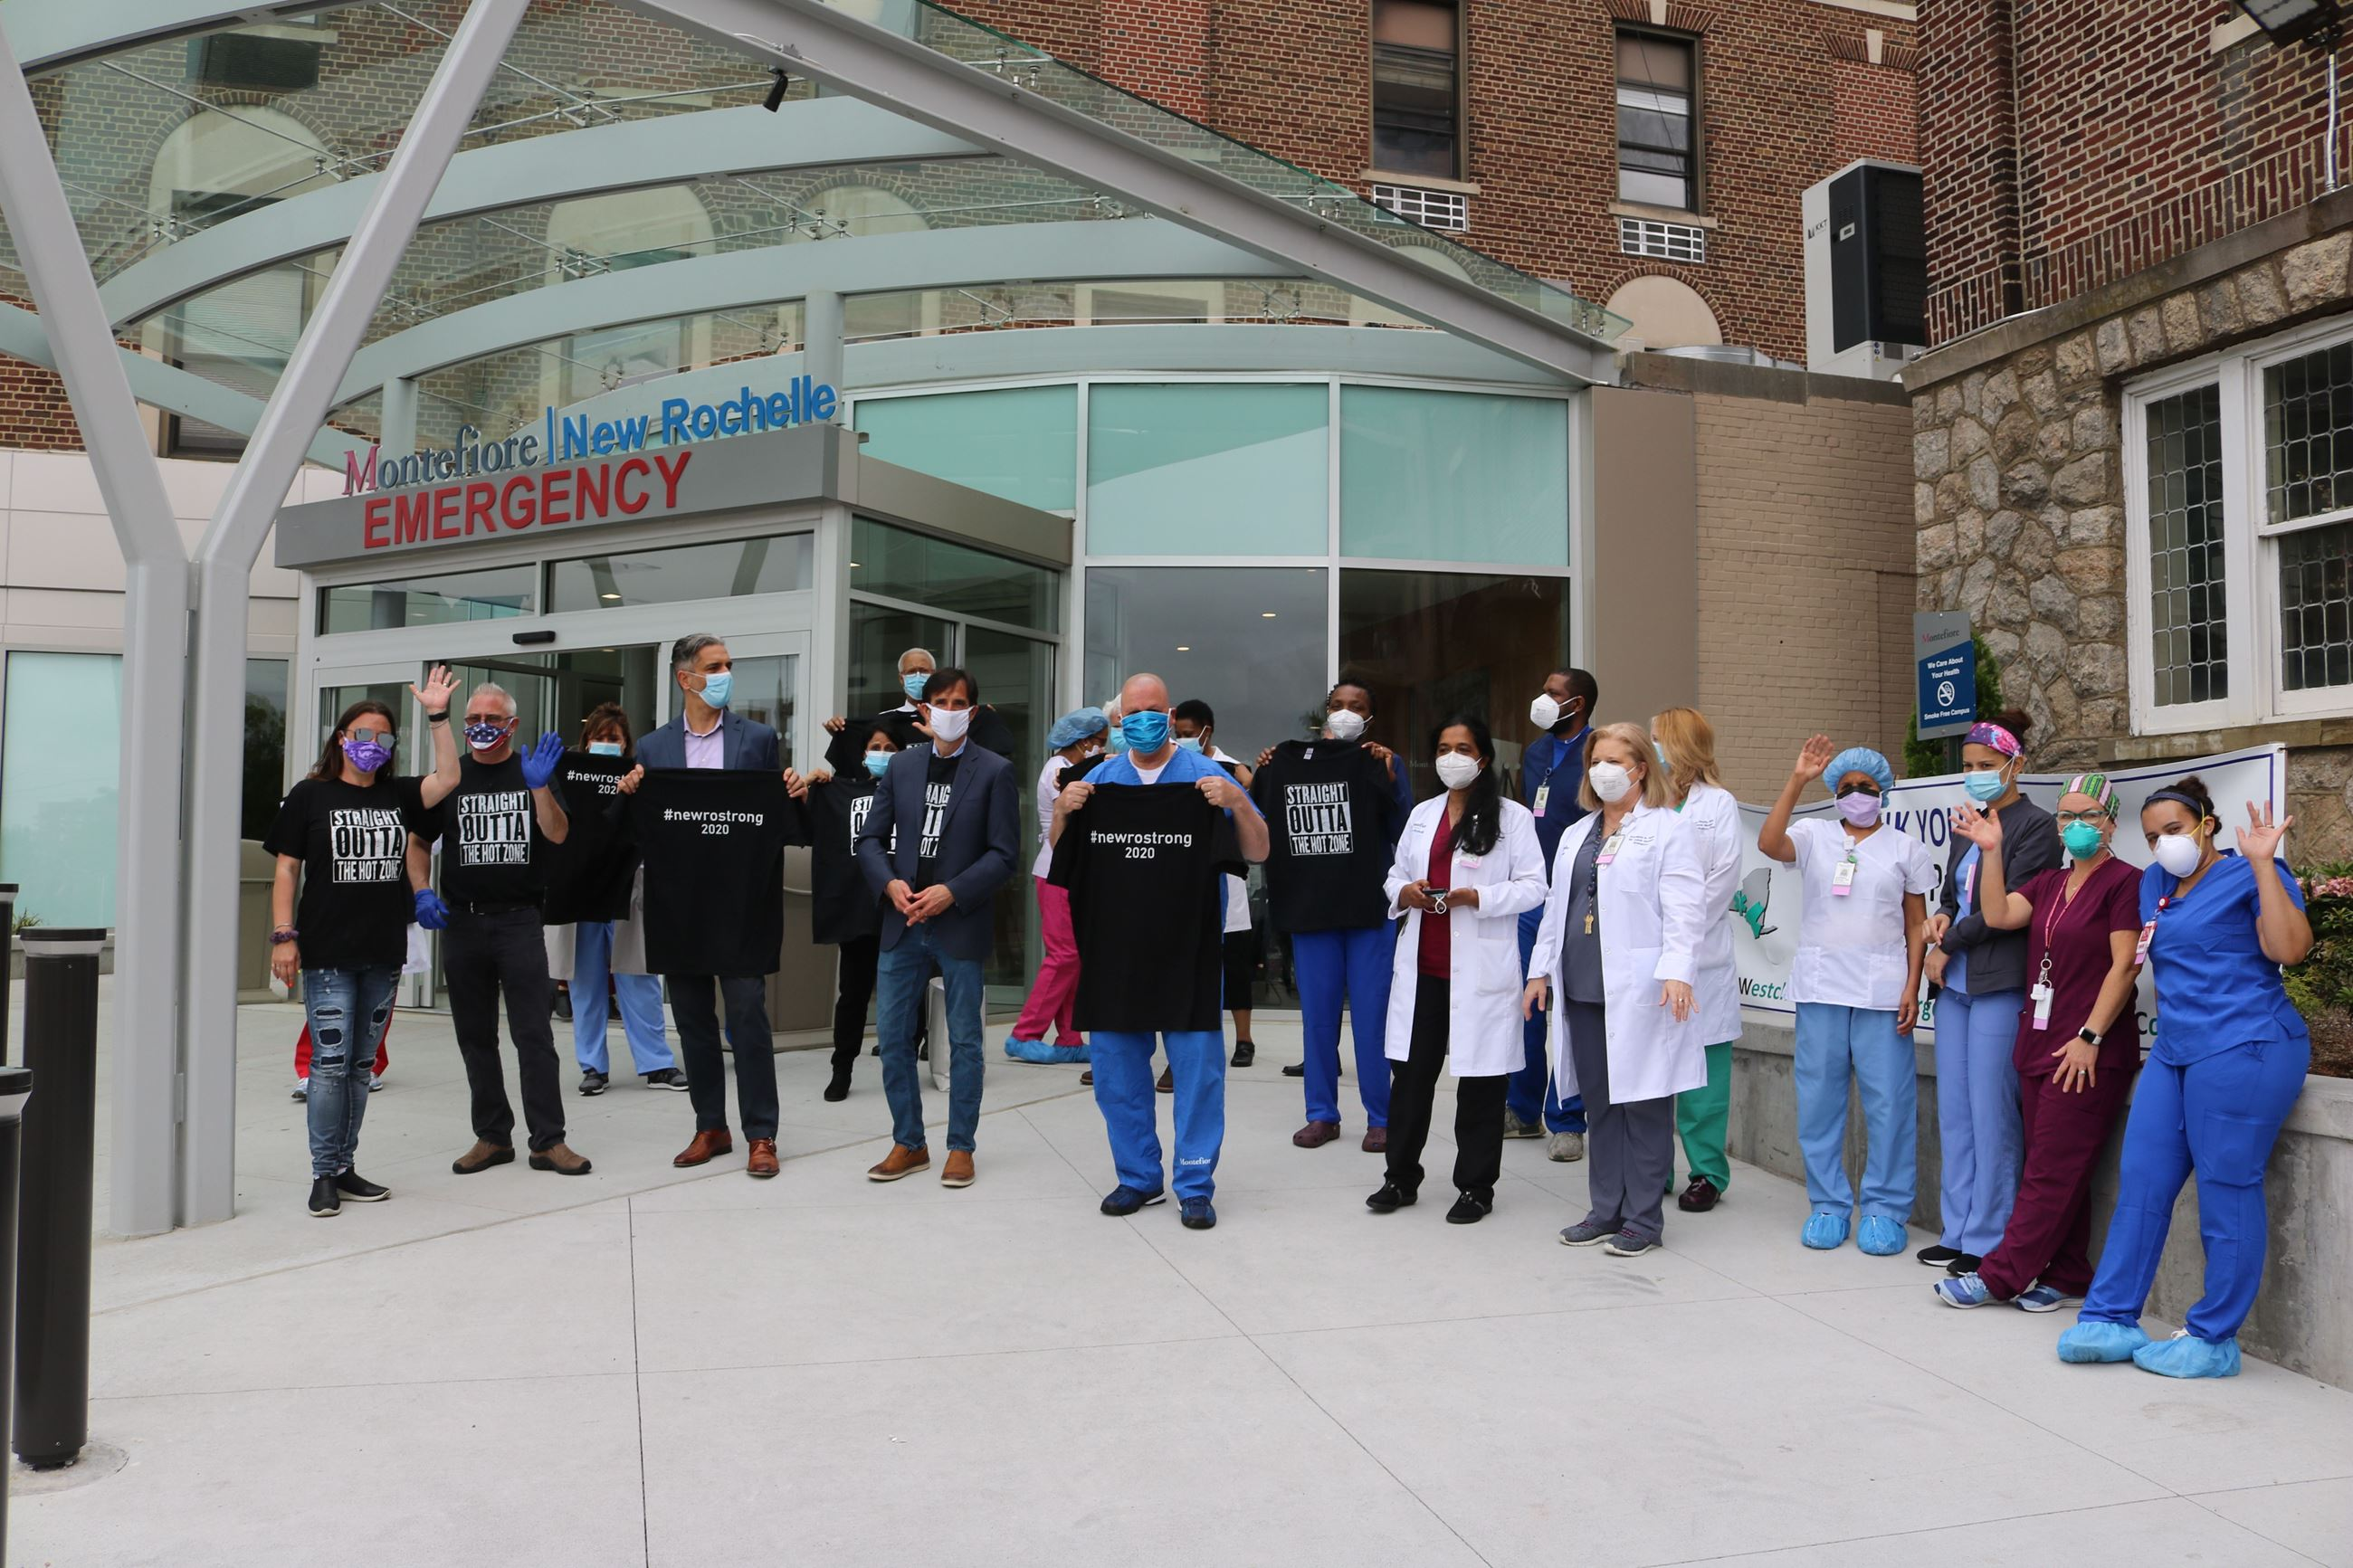 City and hospital staff show off New Ro Strong t-shirts